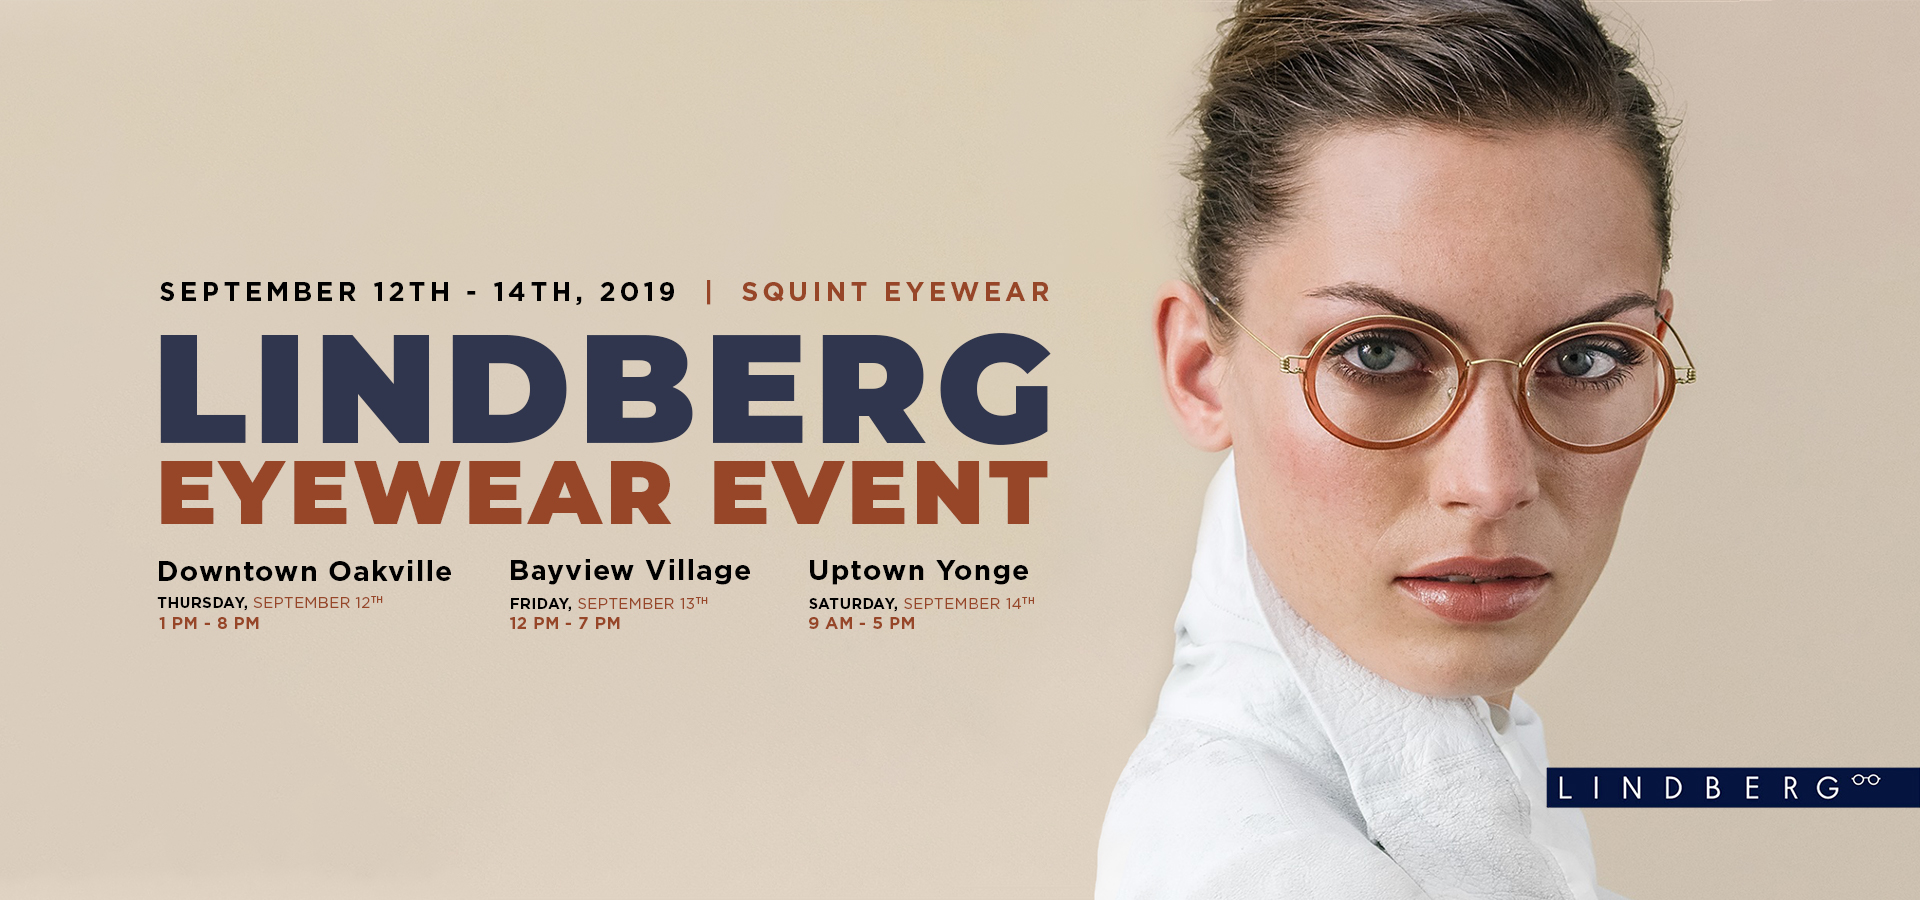 Lindberg-eye-wear-event